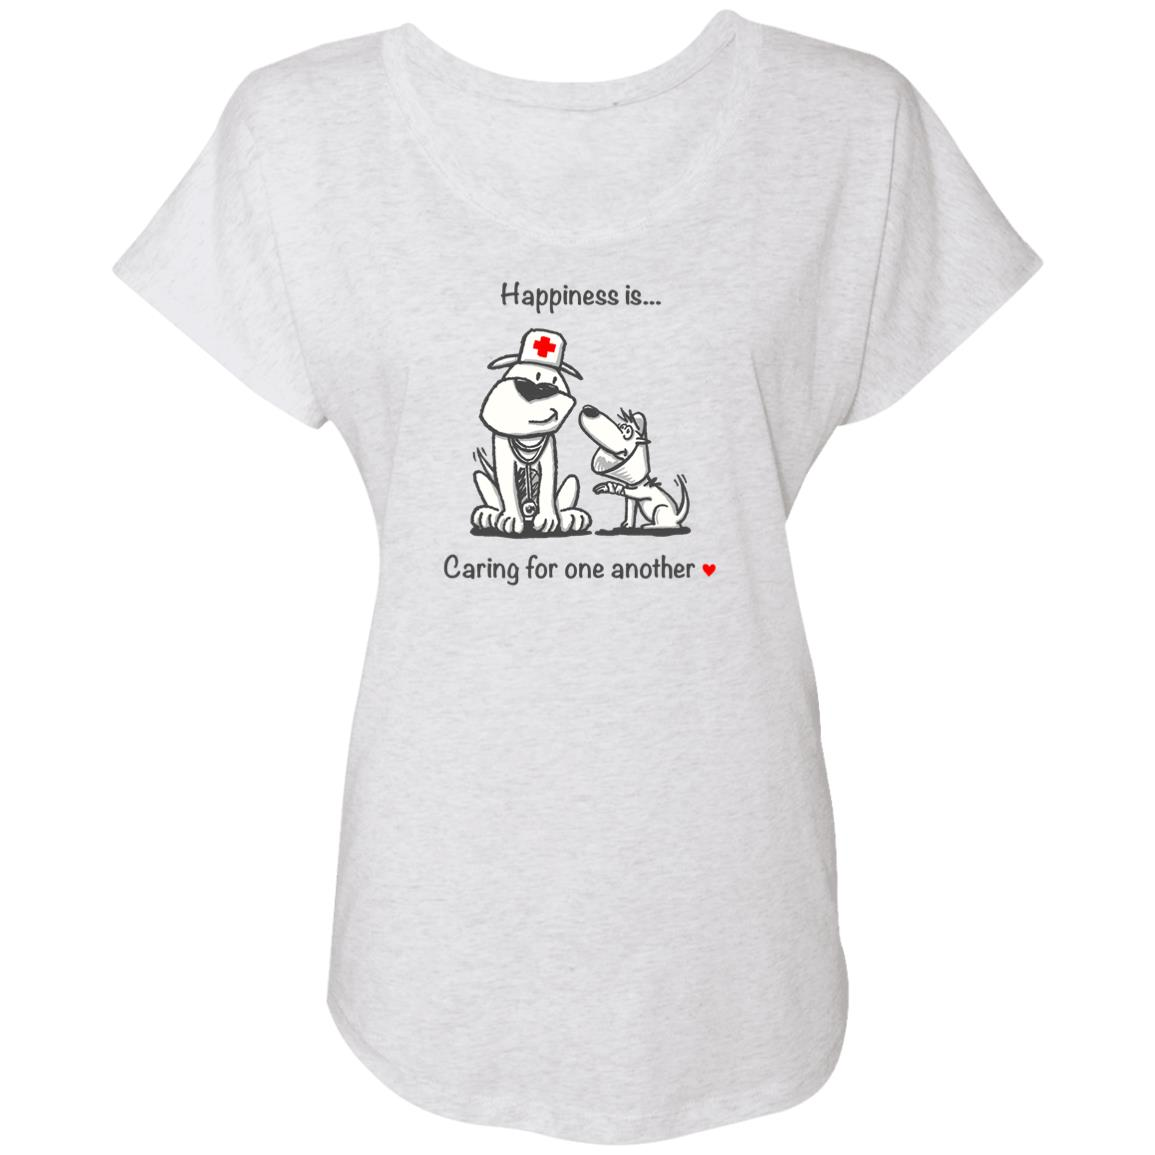 Happiness Is Caring For One Another Heather White Slouchy Tee